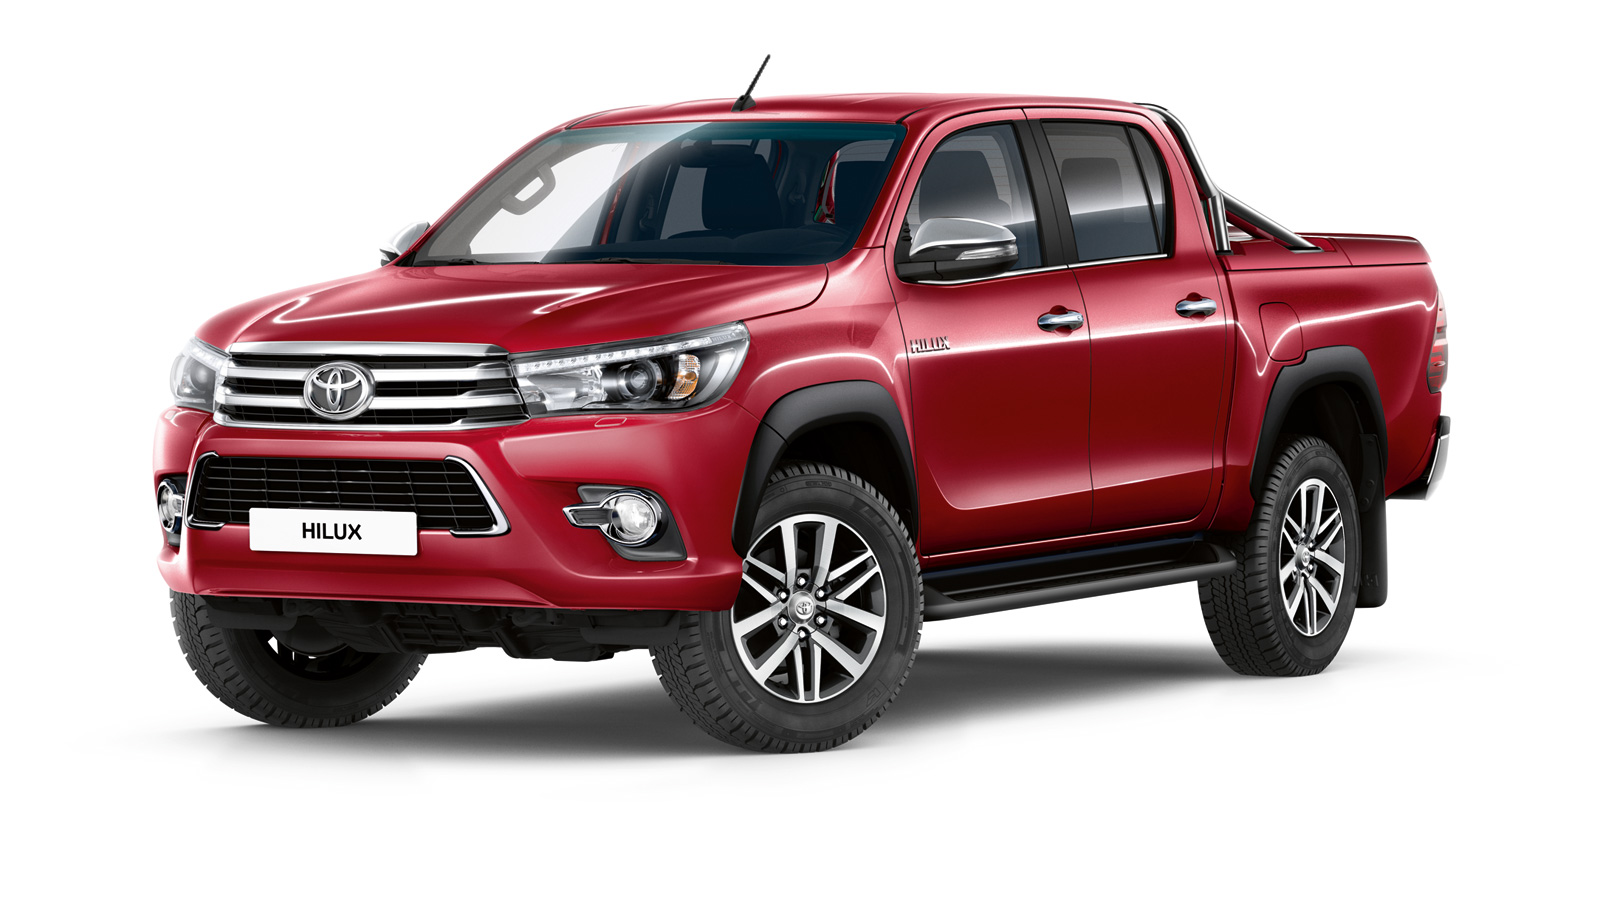 2016 yeni kasa toyota hilux teknik zellikleri ve t rkiye fiyat a kland oto kokpit. Black Bedroom Furniture Sets. Home Design Ideas